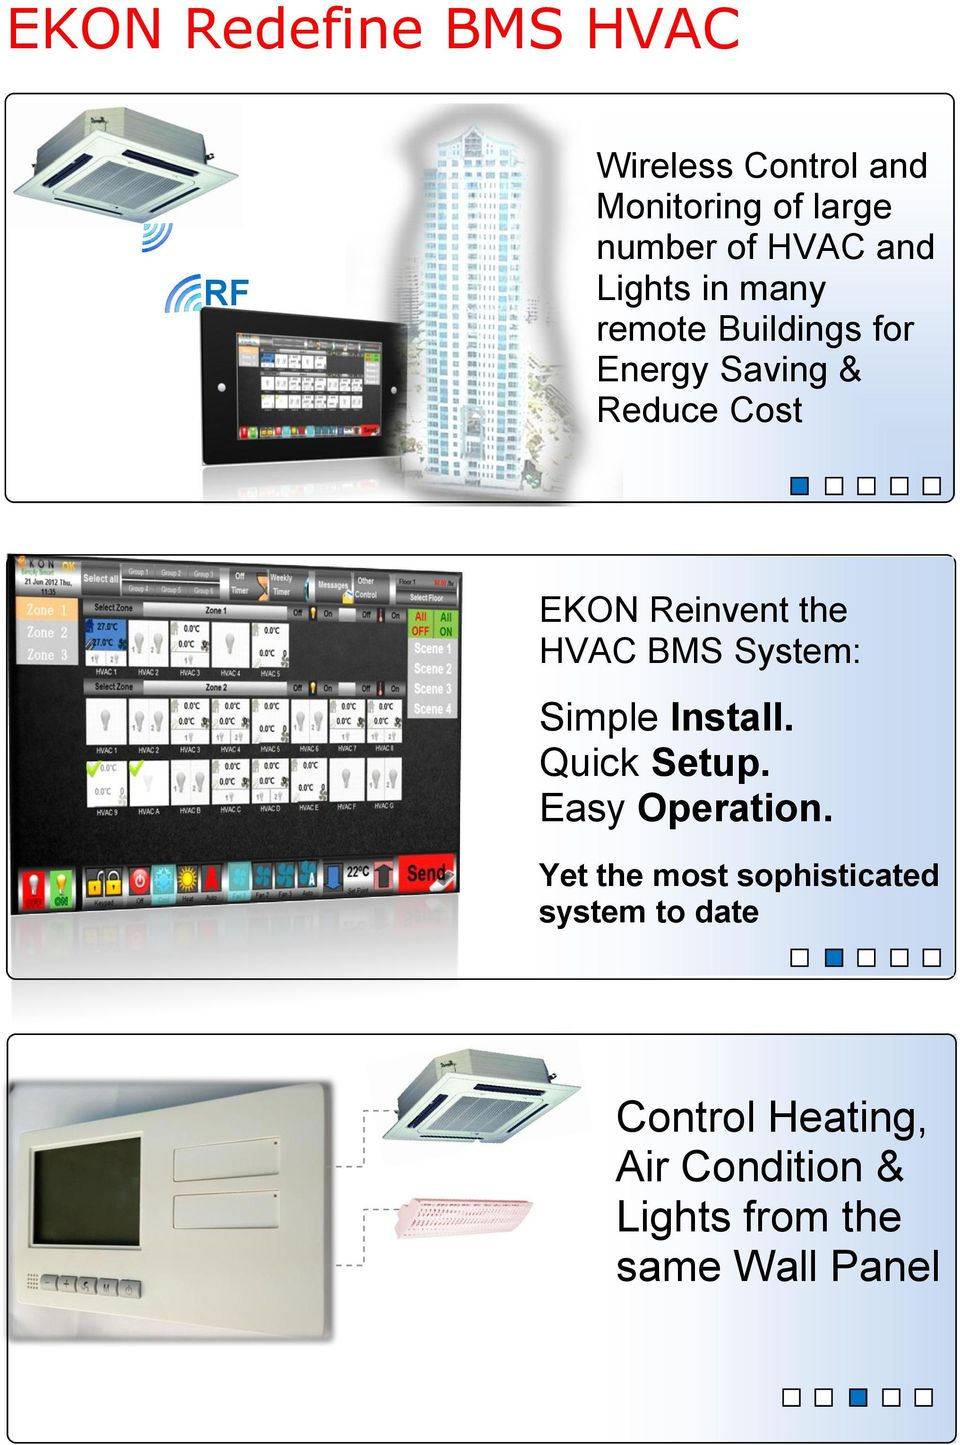 the HVAC BMS System: Simple Install. Quick Setup. Easy Operation.